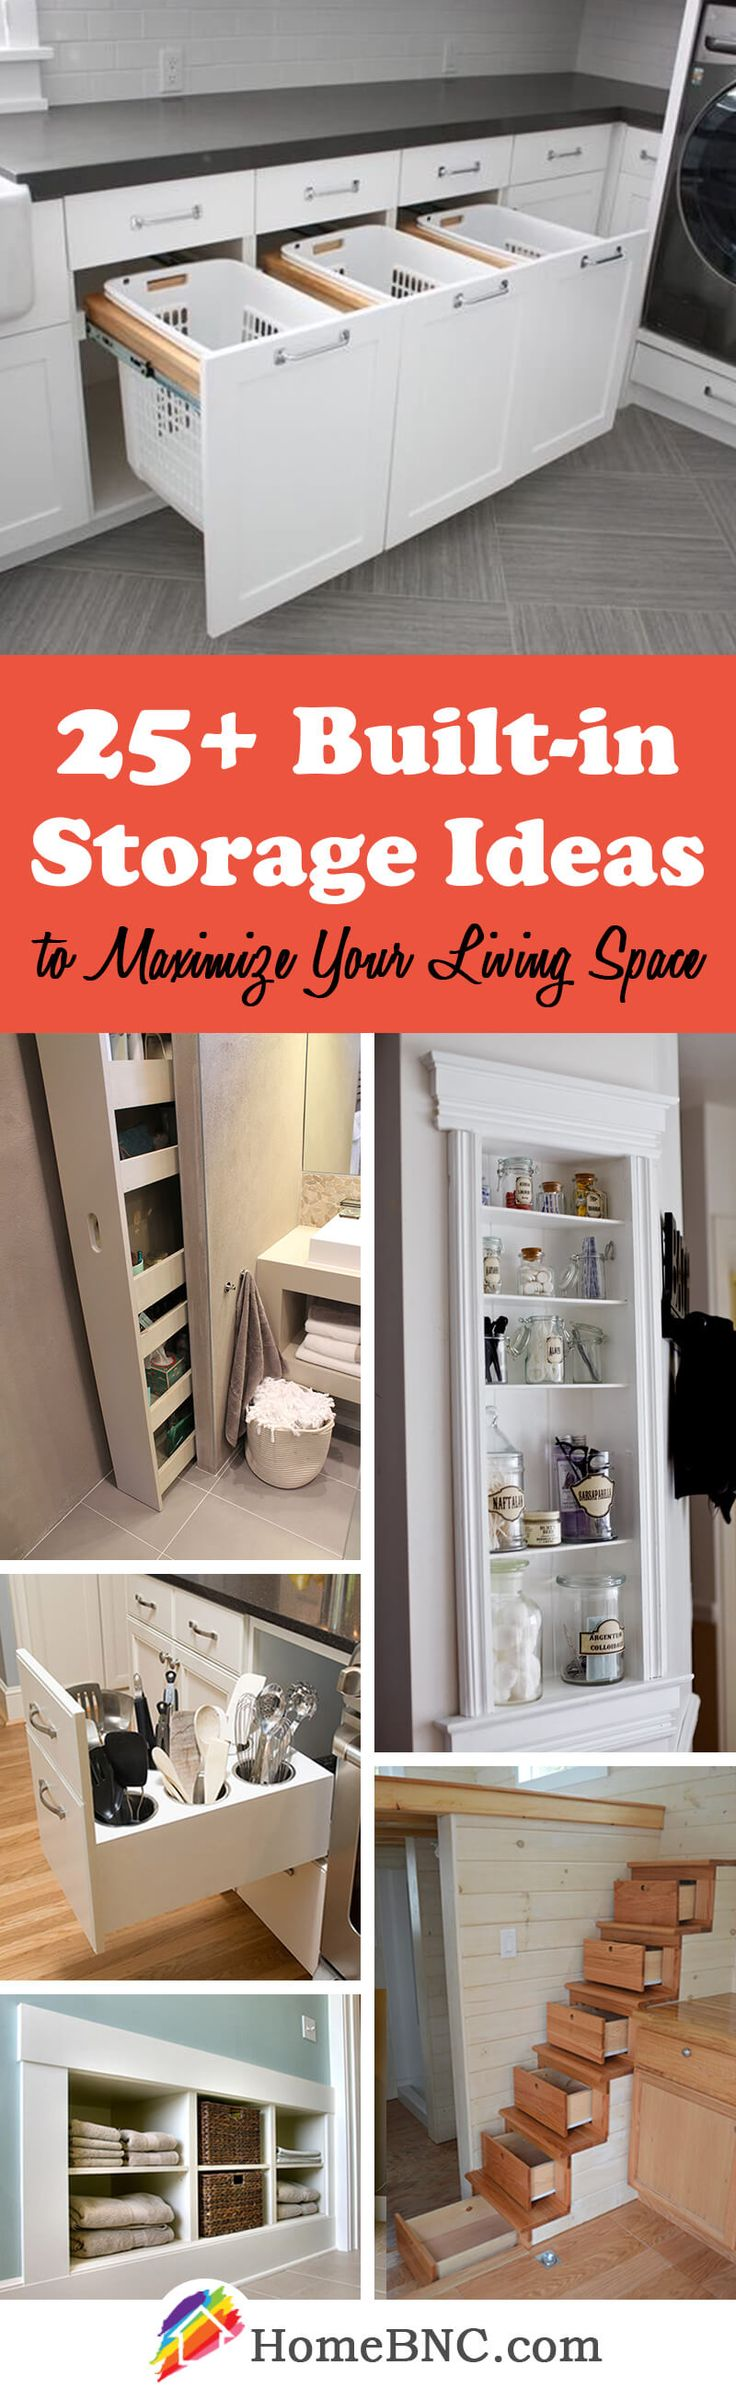 25 Fabulous Built in Storage Ideas to Maximize